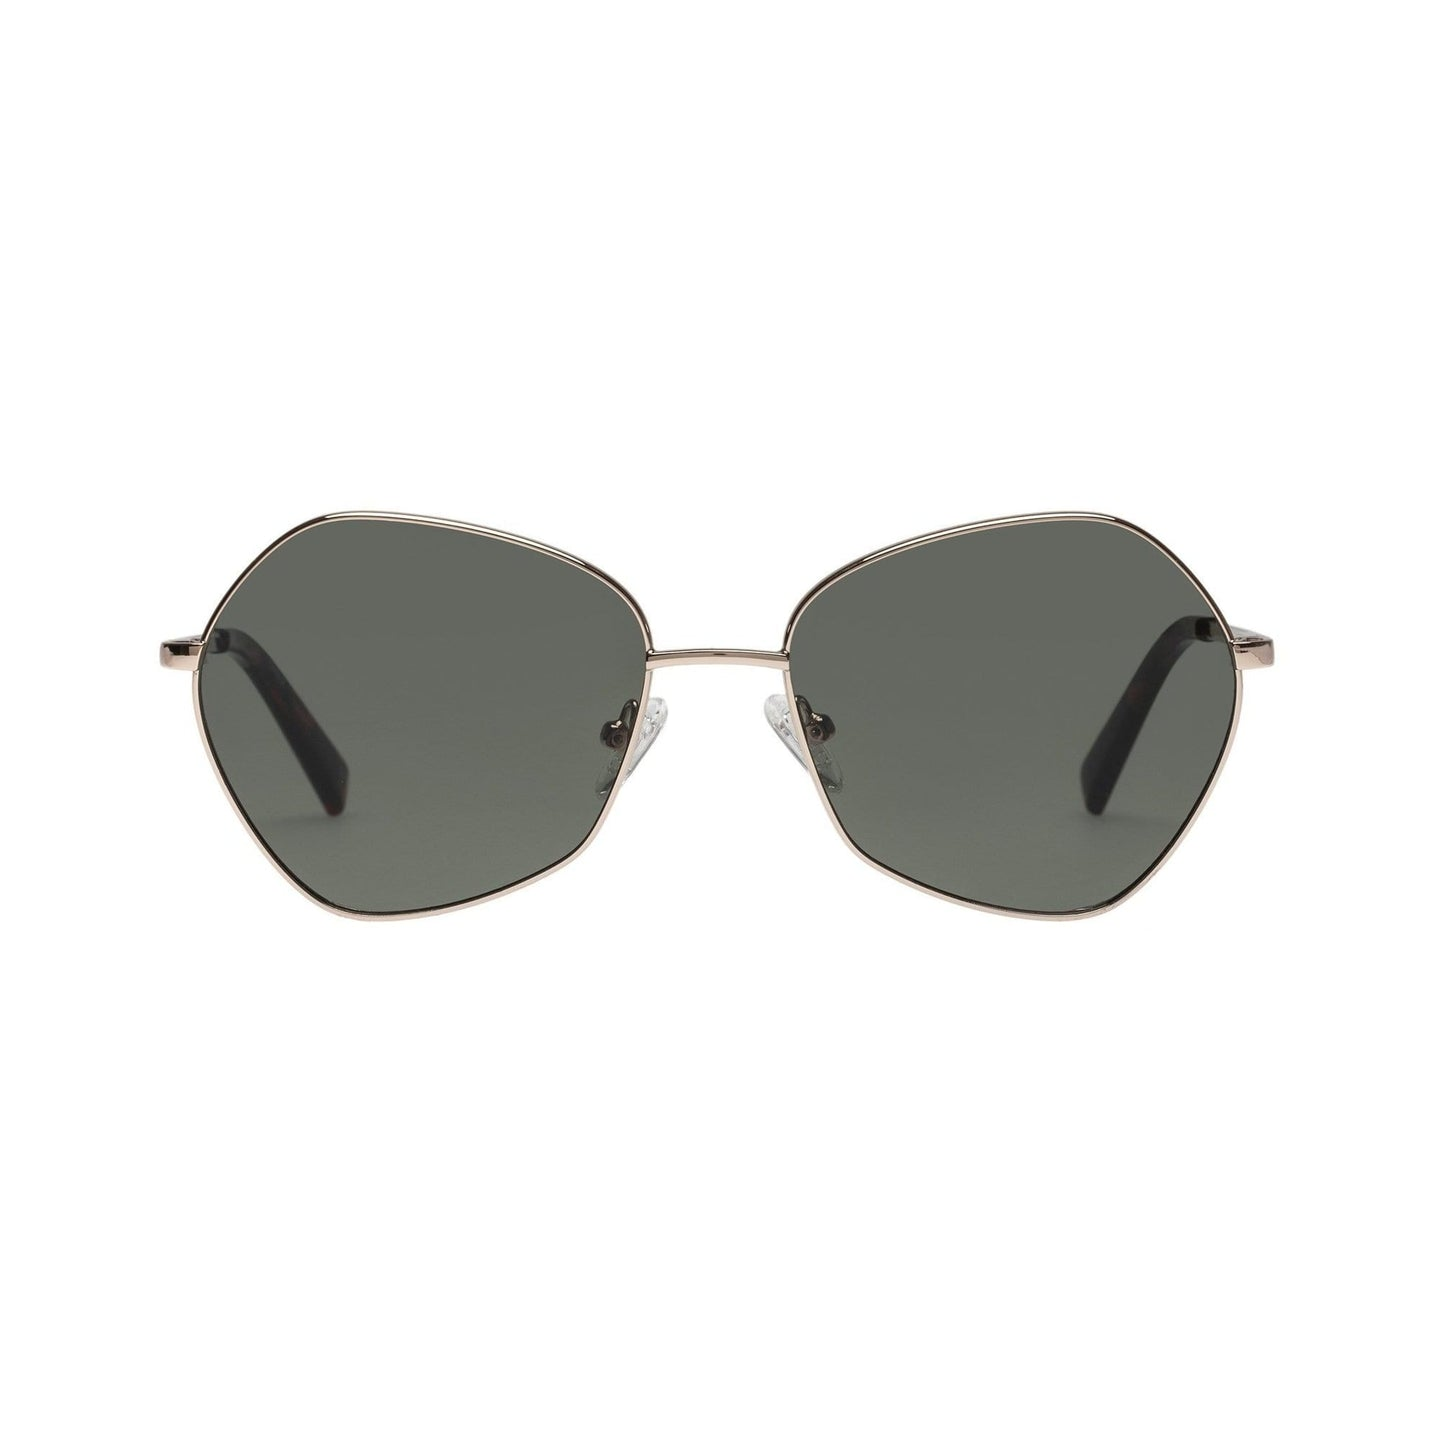 Escadrille Sunglasses / Neighborhood Goods